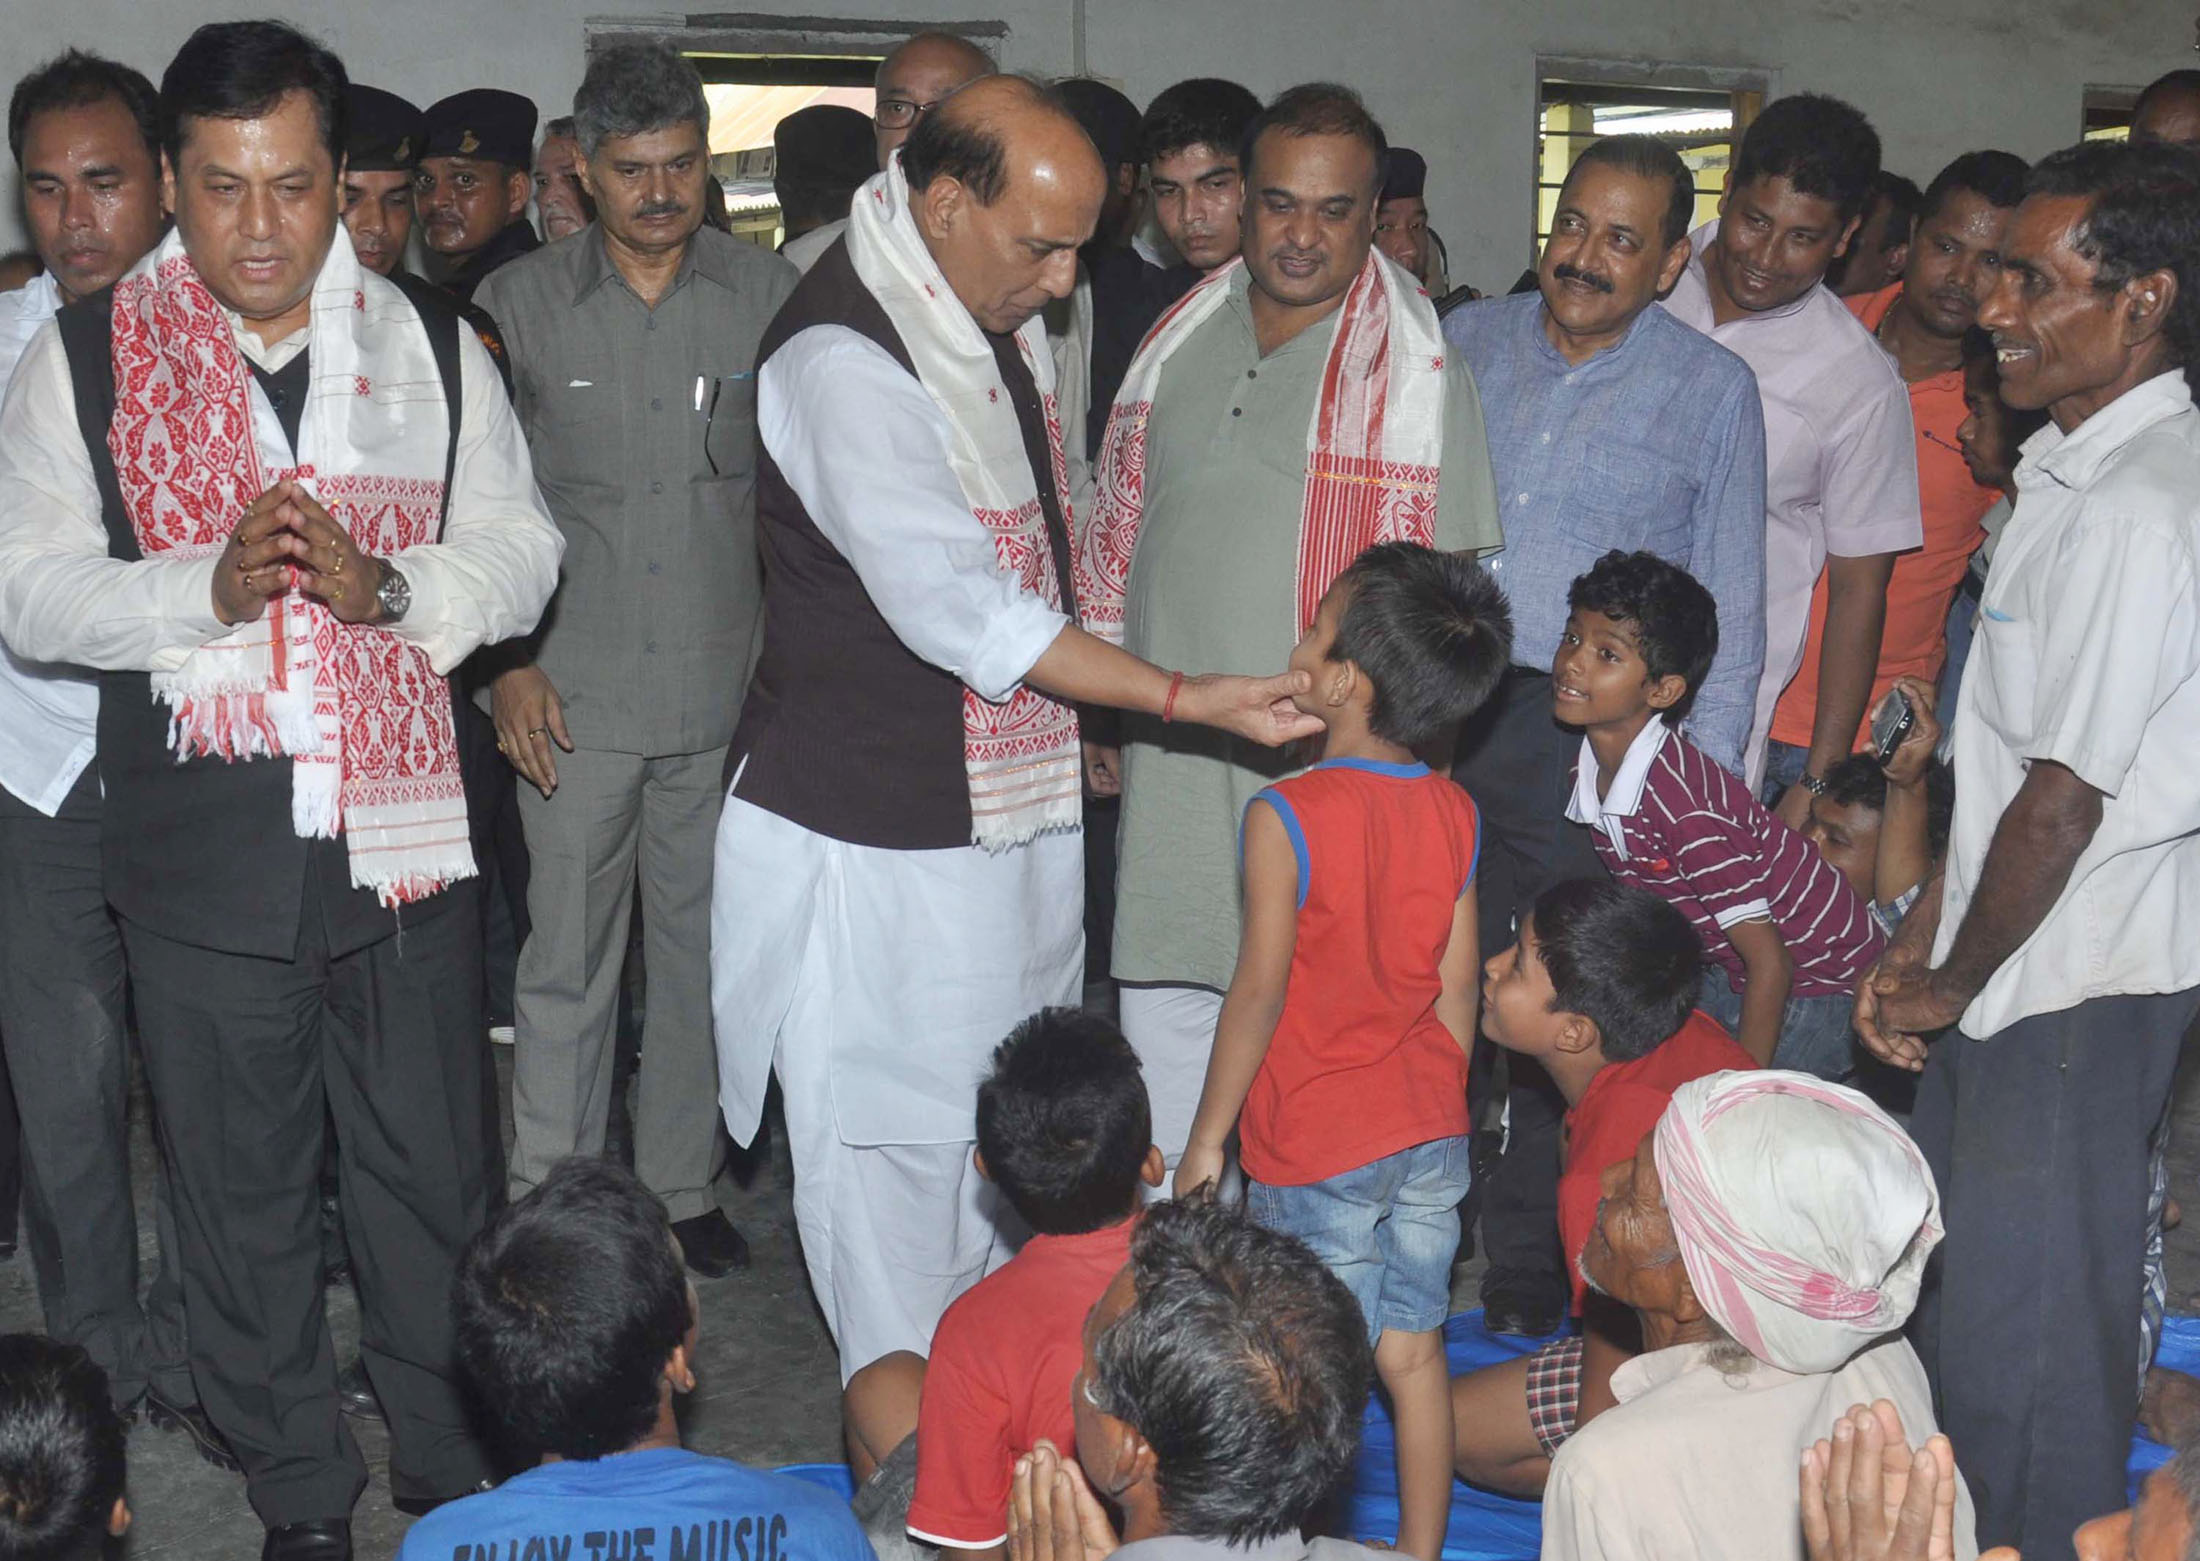 The Union Home Minister, Shri Rajnath Singh visiting the flood relive camp, at Morigaon, District of Assam on July 30, 2016. The Chief Minister of Assam, Shri Sarbananda Sonowal and the Minister of State for Development of North Eastern Region (I/C), Prime Minister's Office, Personnel, Public Grievances & Pensions, Atomic Energy and Space, Dr. Jitendra Singh are also seen.